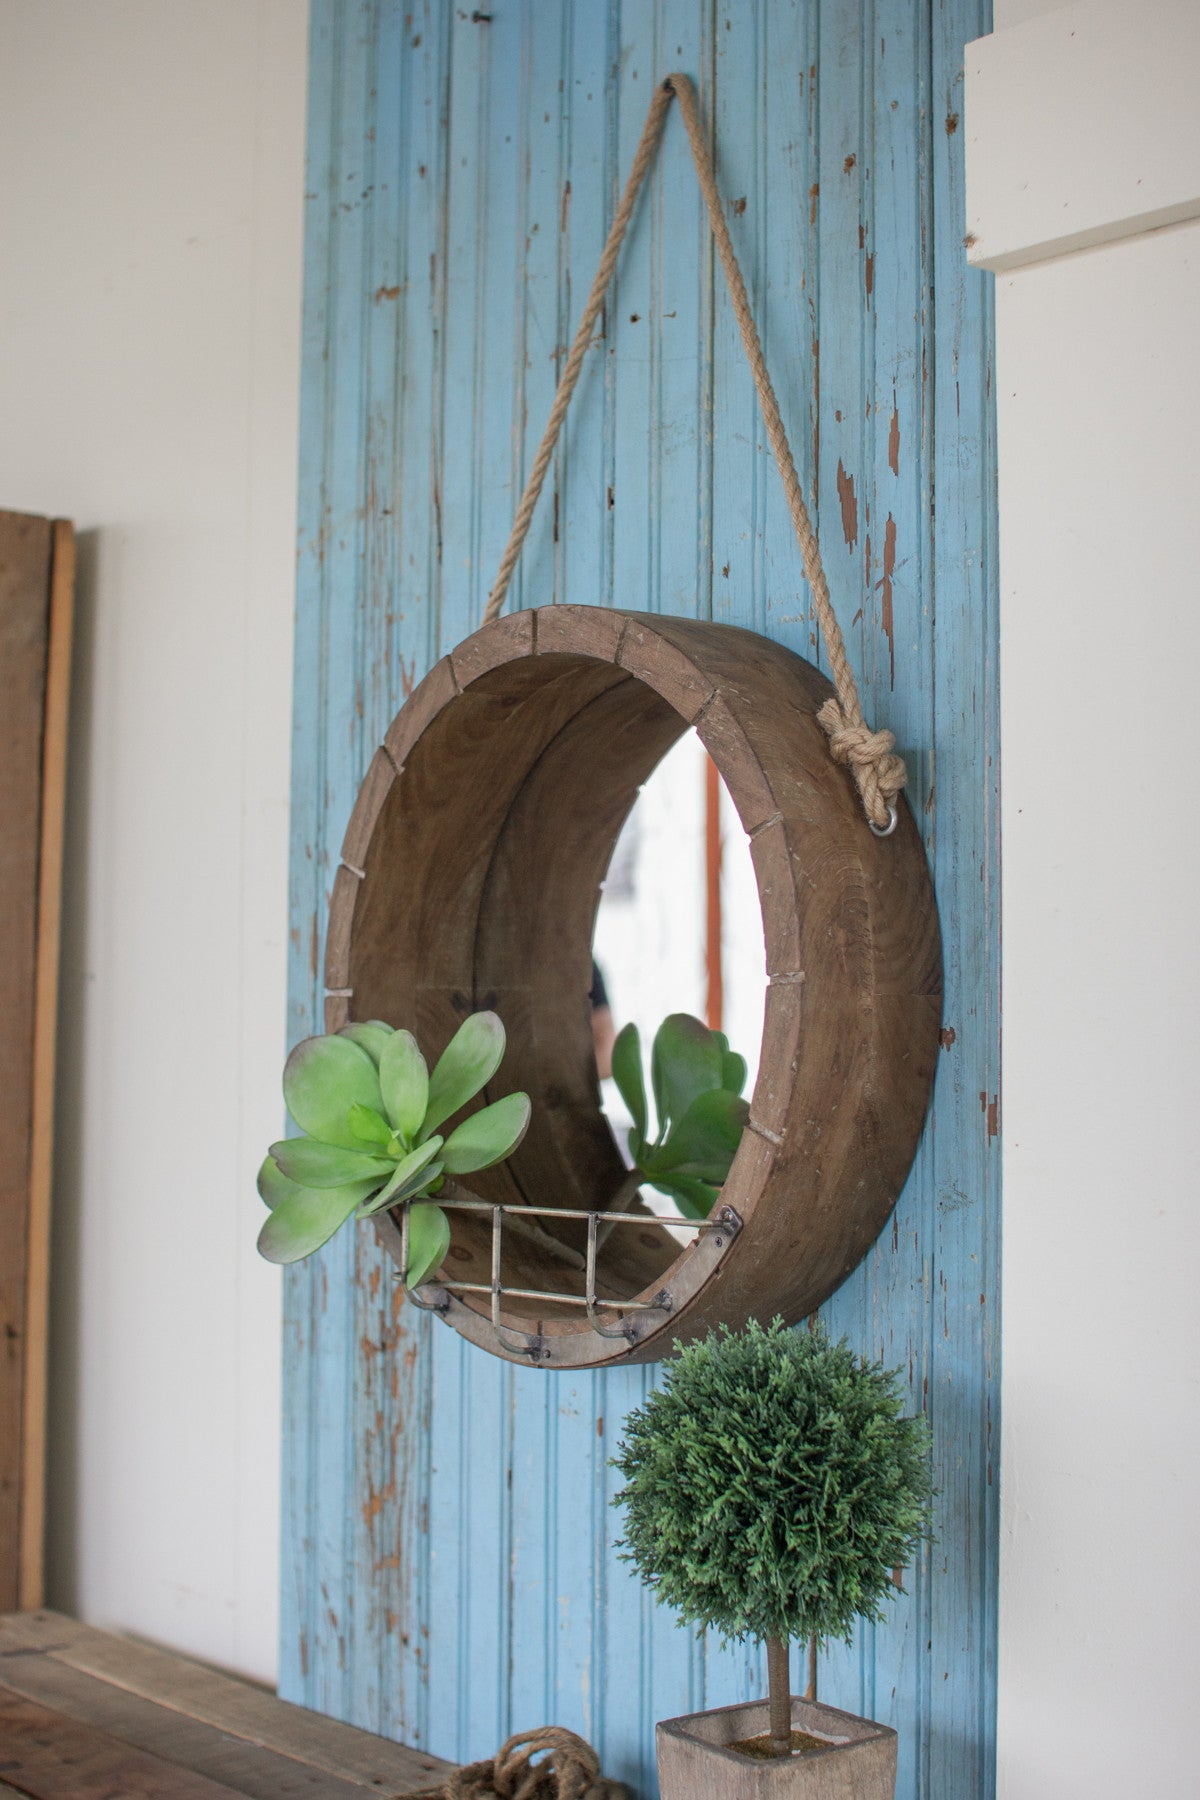 HANGING ROUND WOODEN MIRROR WITH ROPE HANGER METAL SHELF